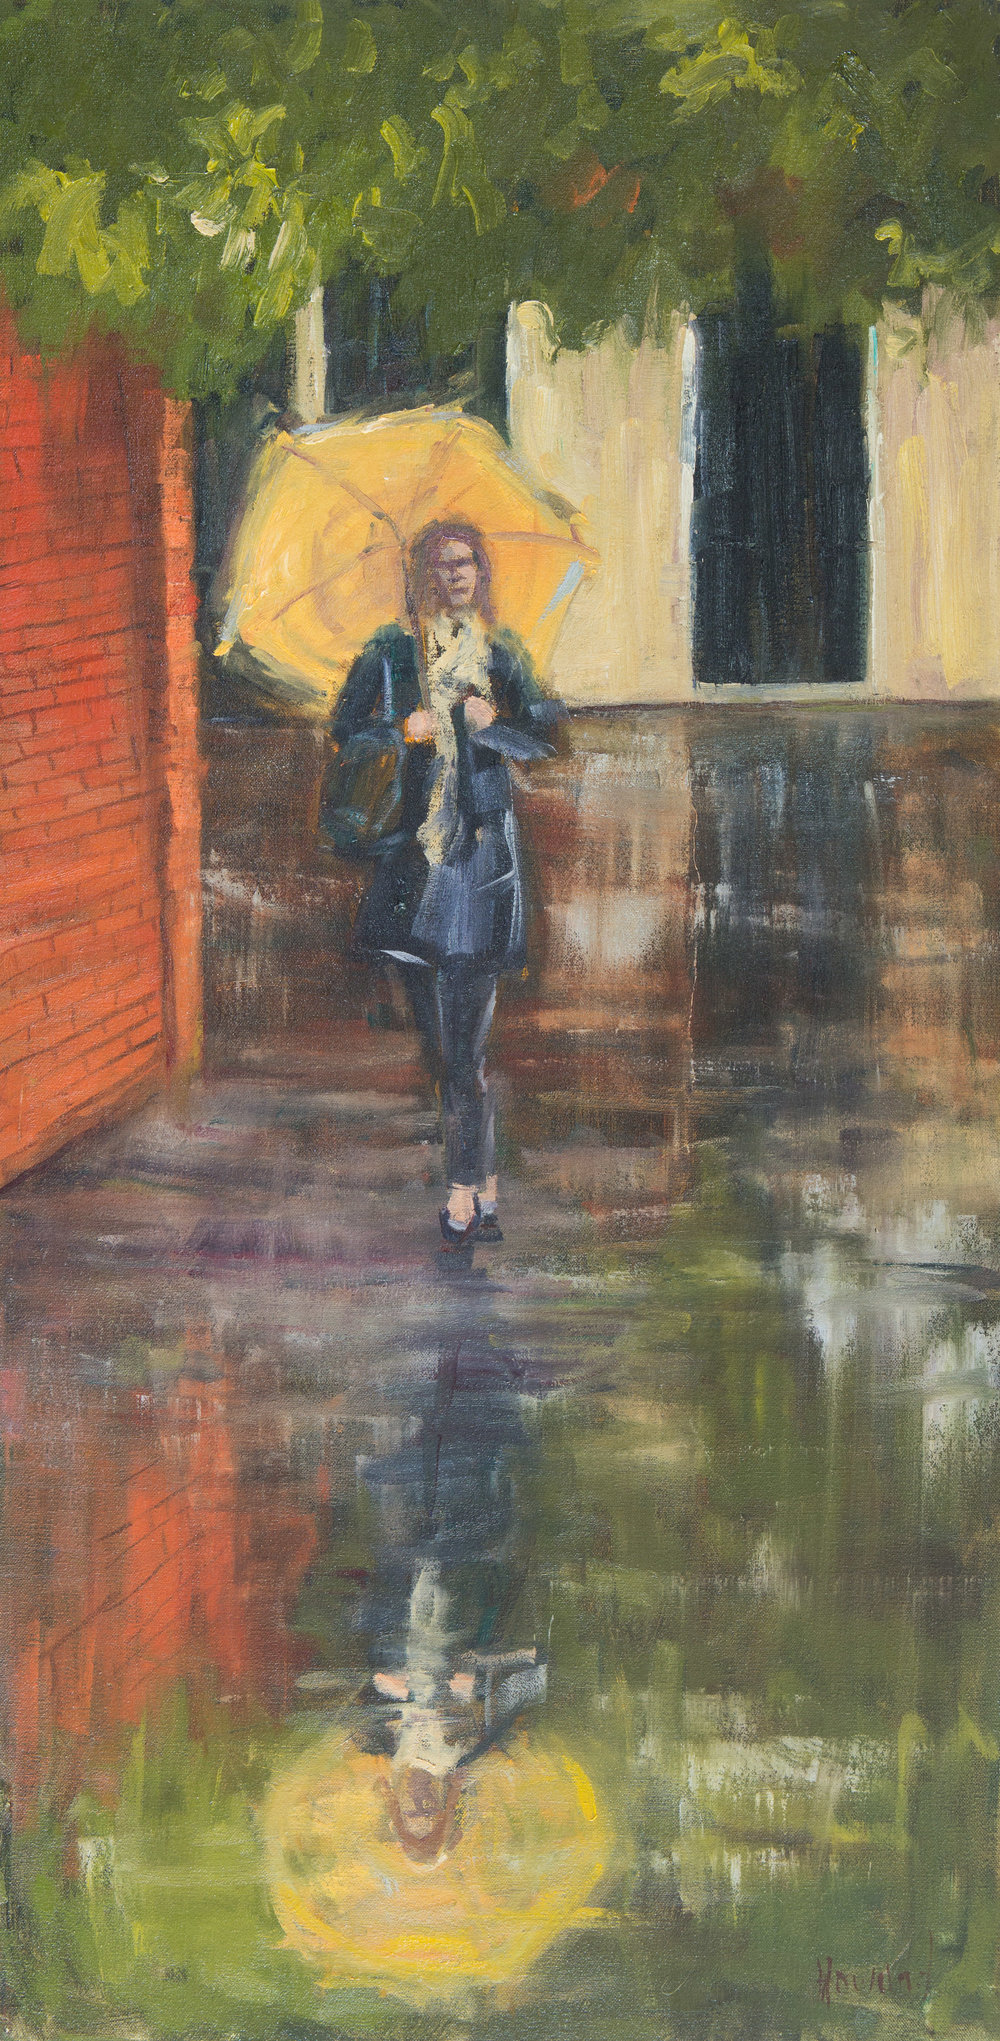 31-Yellow Umbrella-18 x 36.jpg